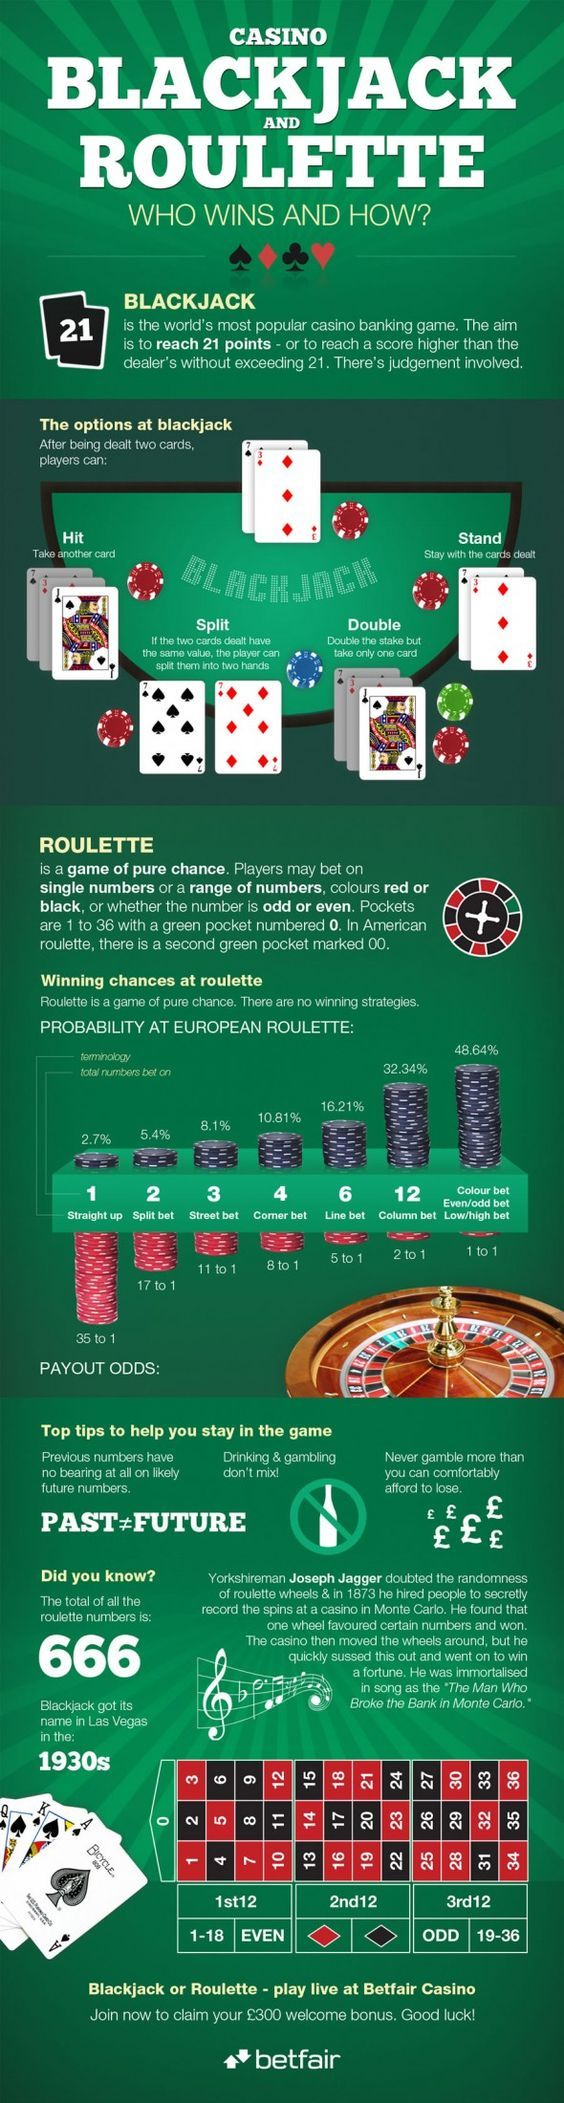 While Playing Blackjack And Roulette Games? The Folks At Betfair Casino  Made Thisgraphic Describing The Odds, Chances Also, You Can Get Some  Vital